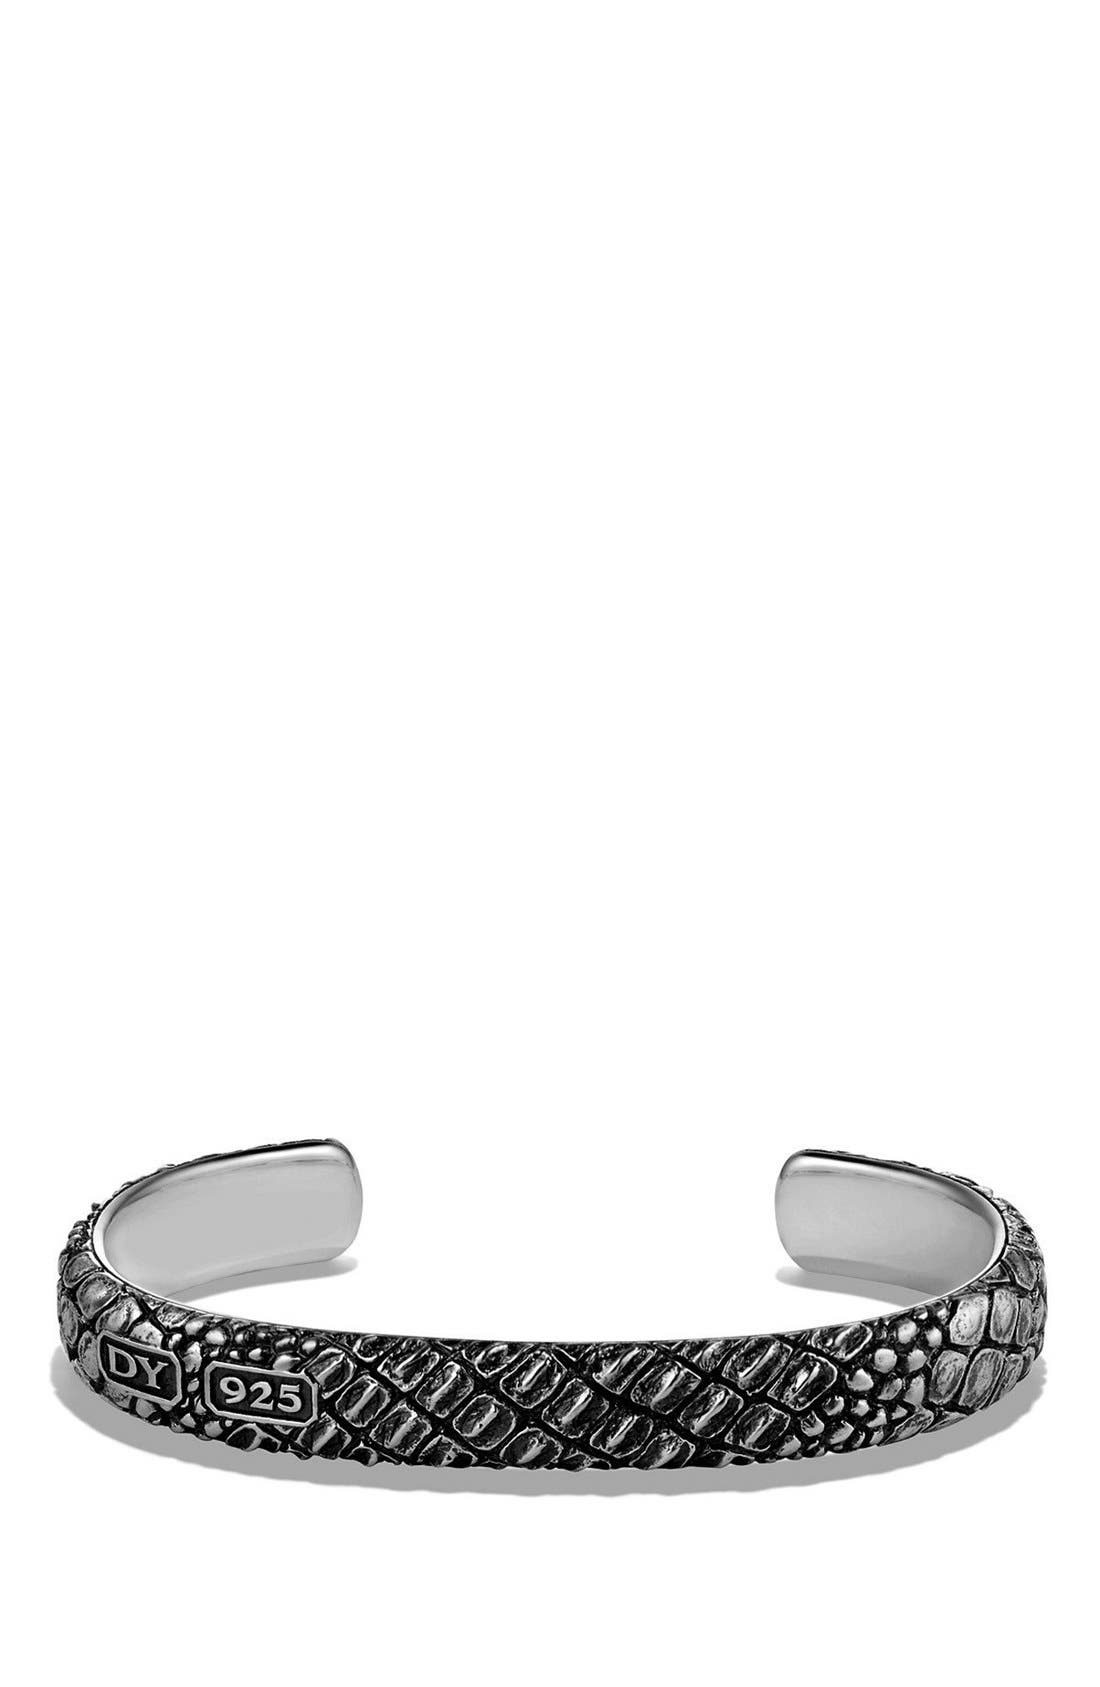 'Naturals' Gator Cuff Bracelet,                             Main thumbnail 1, color,                             Silver